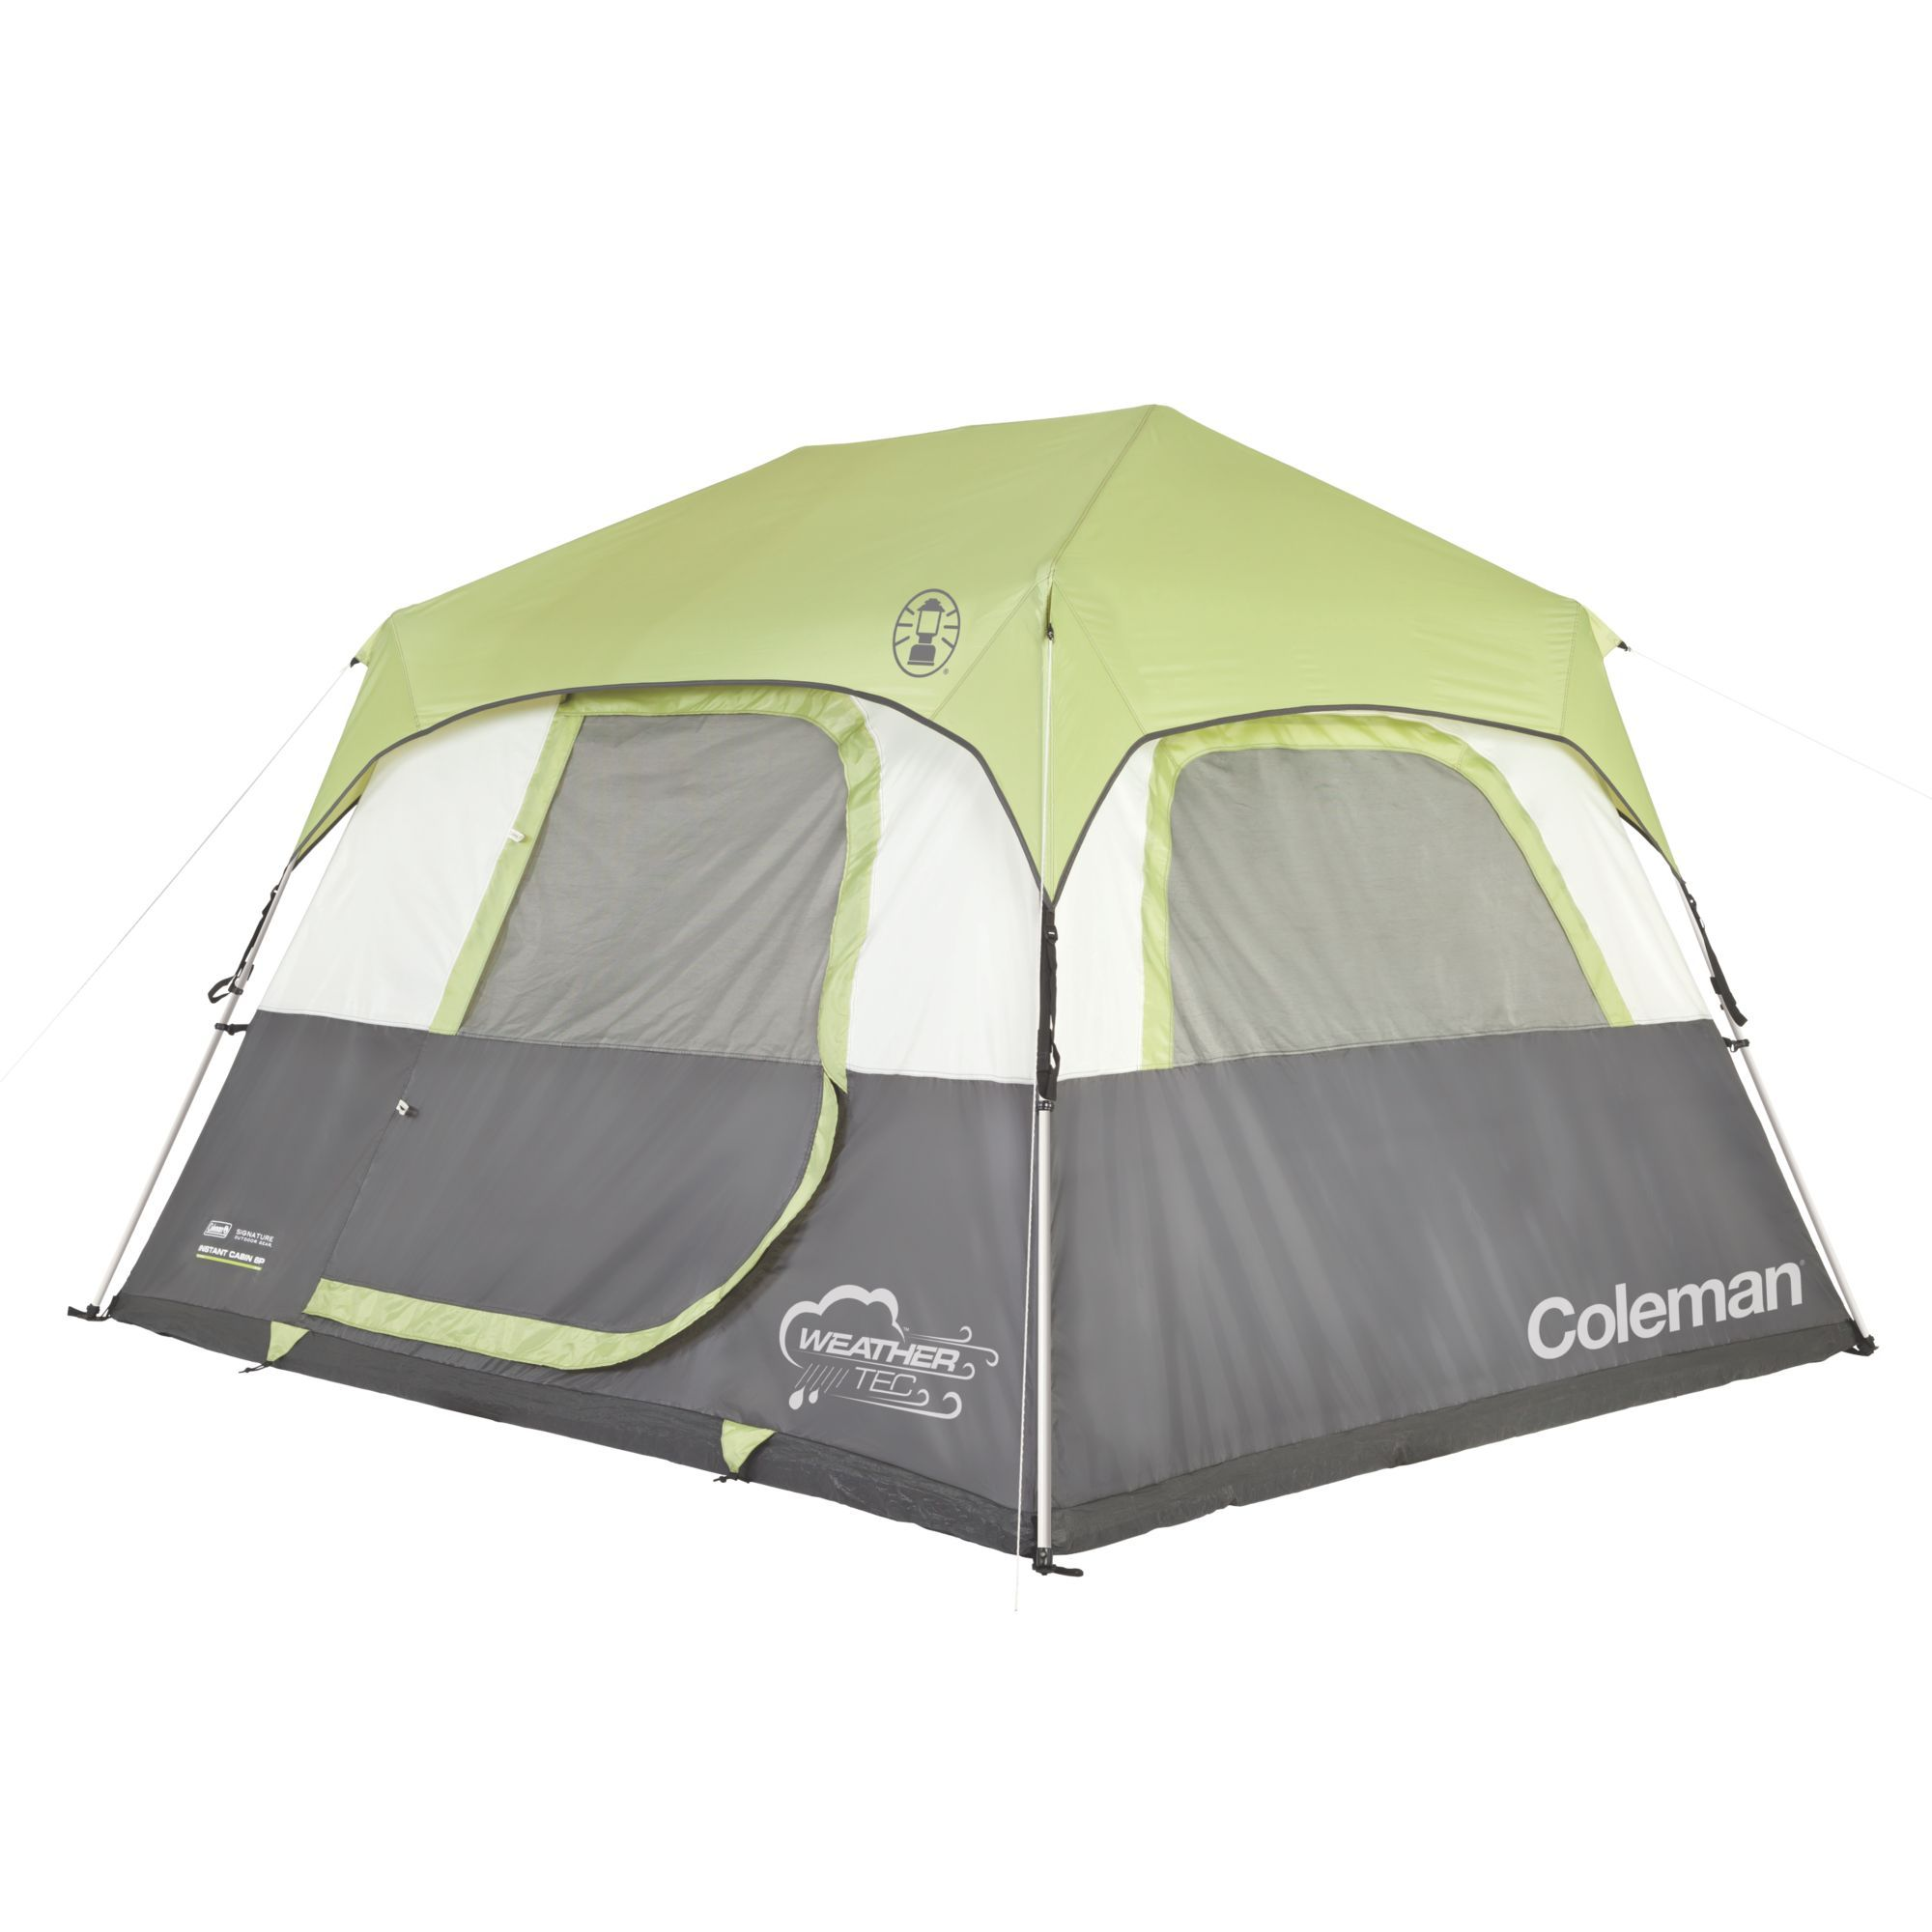 tri what the alps tent around sundome person review is coleman camping all for best mountaineering under awning